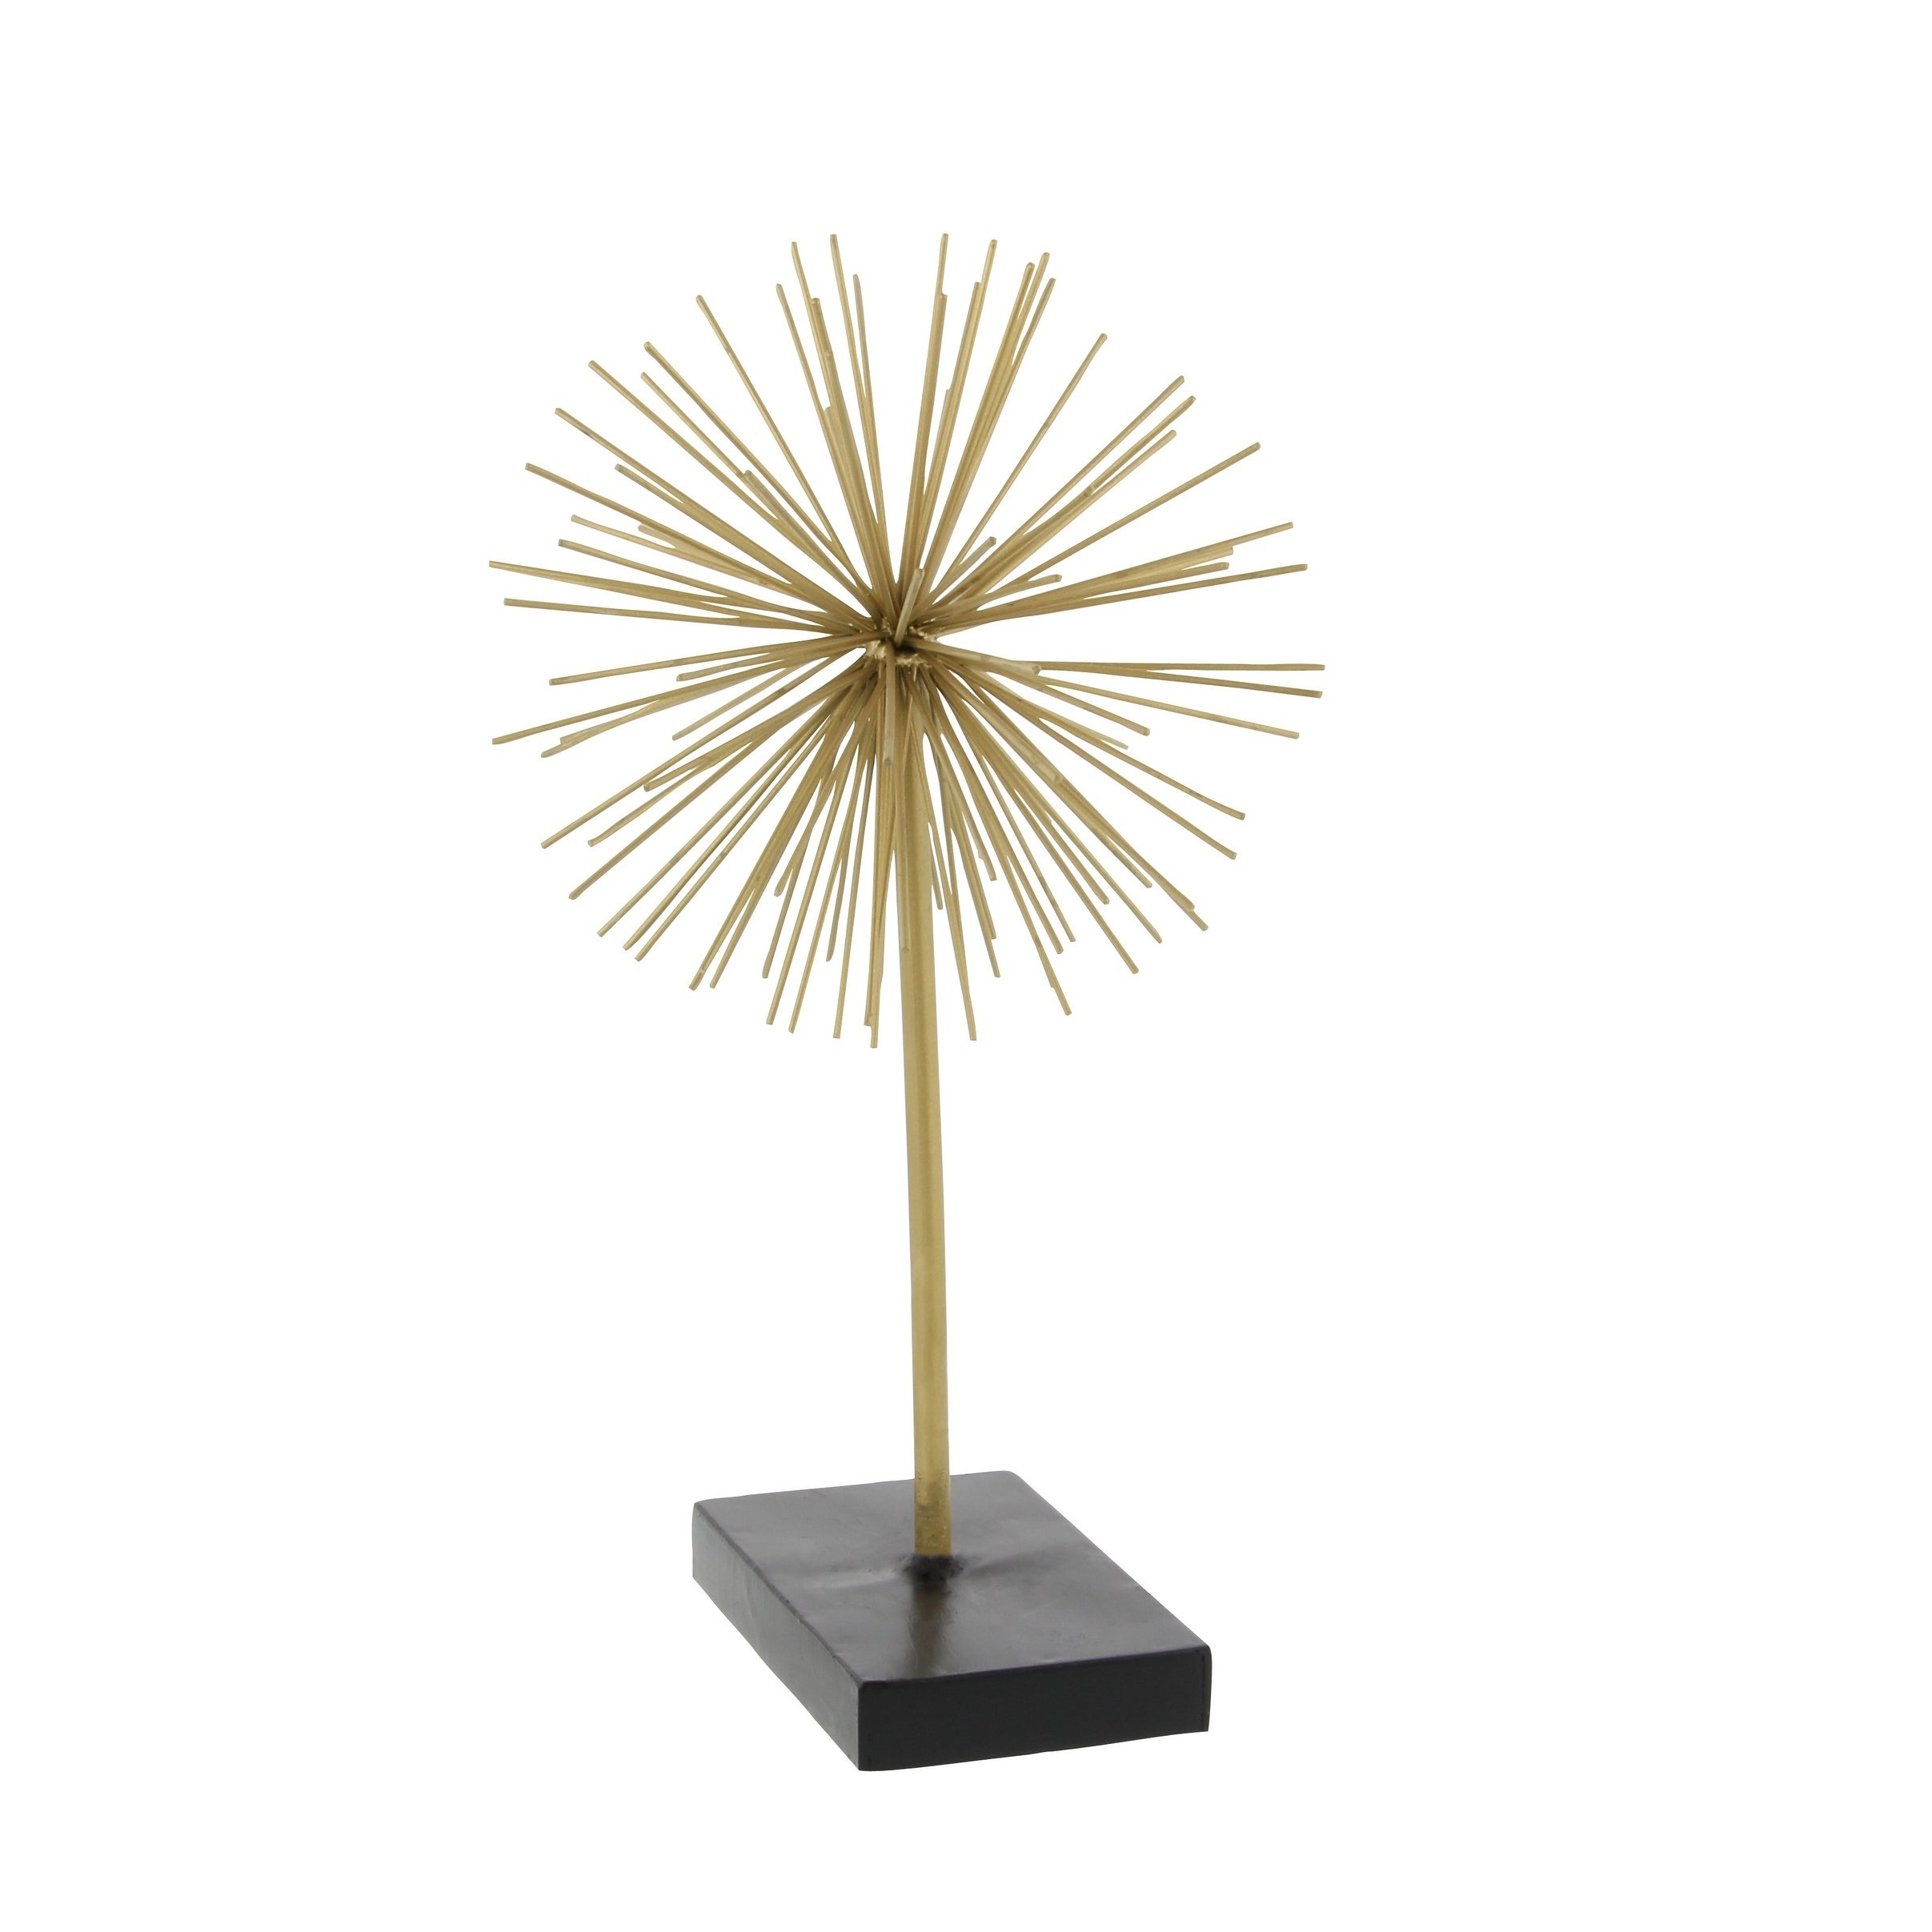 "Tall Contemporary Style 3D Round Gold Metal Starburst Sculptures On Black  Stands Set Of 3 - 11"", 15"", 20"" for Set Of 3 Contemporary 6, 9, And 11 Inch Gold Tin Starburst Sculptures (Image 25 of 30)"